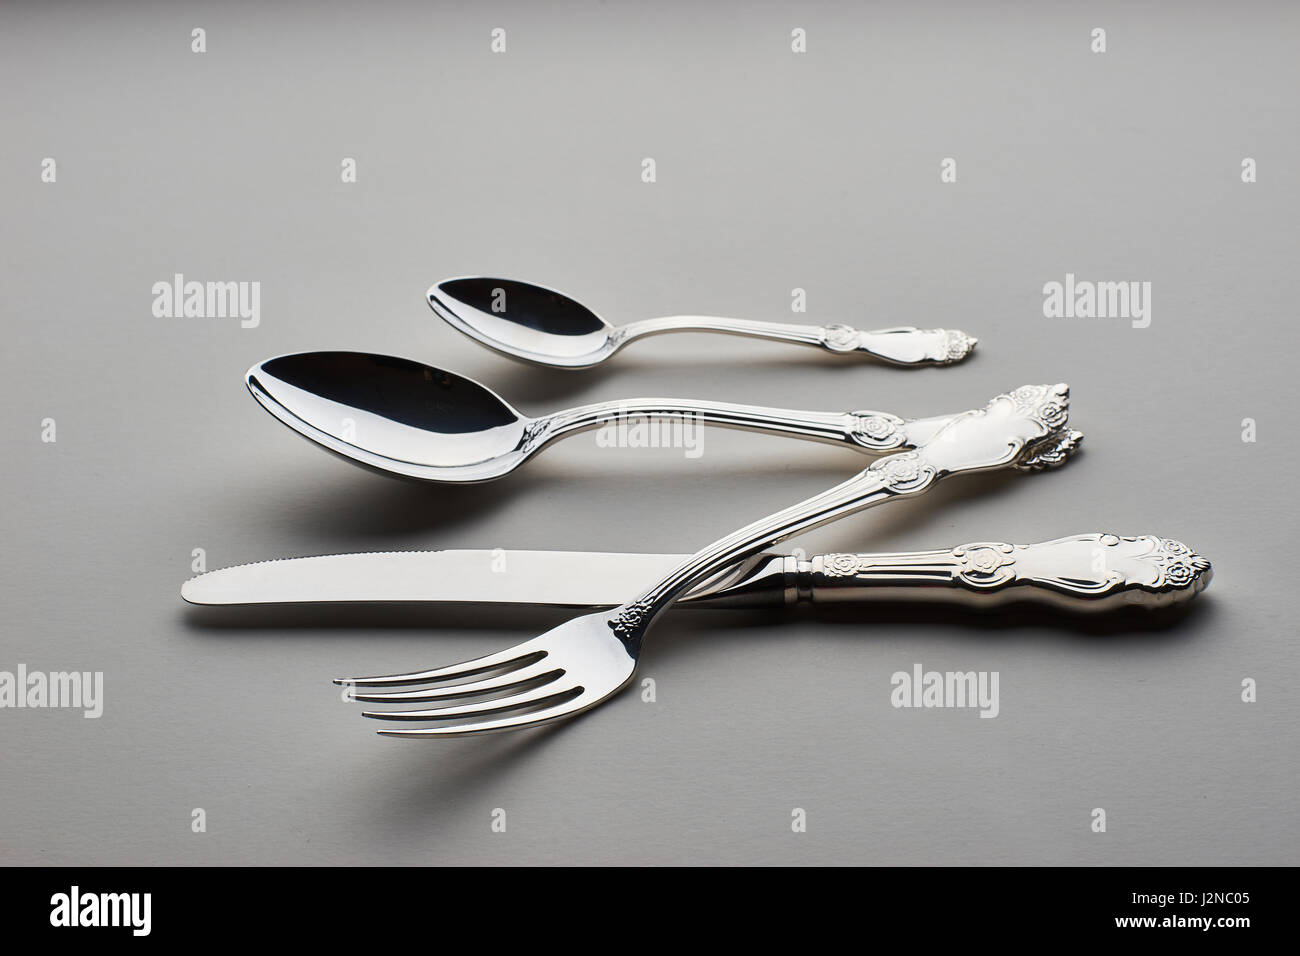 Knife Spoons Stock Photos Knife Spoons Stock Images Alamy